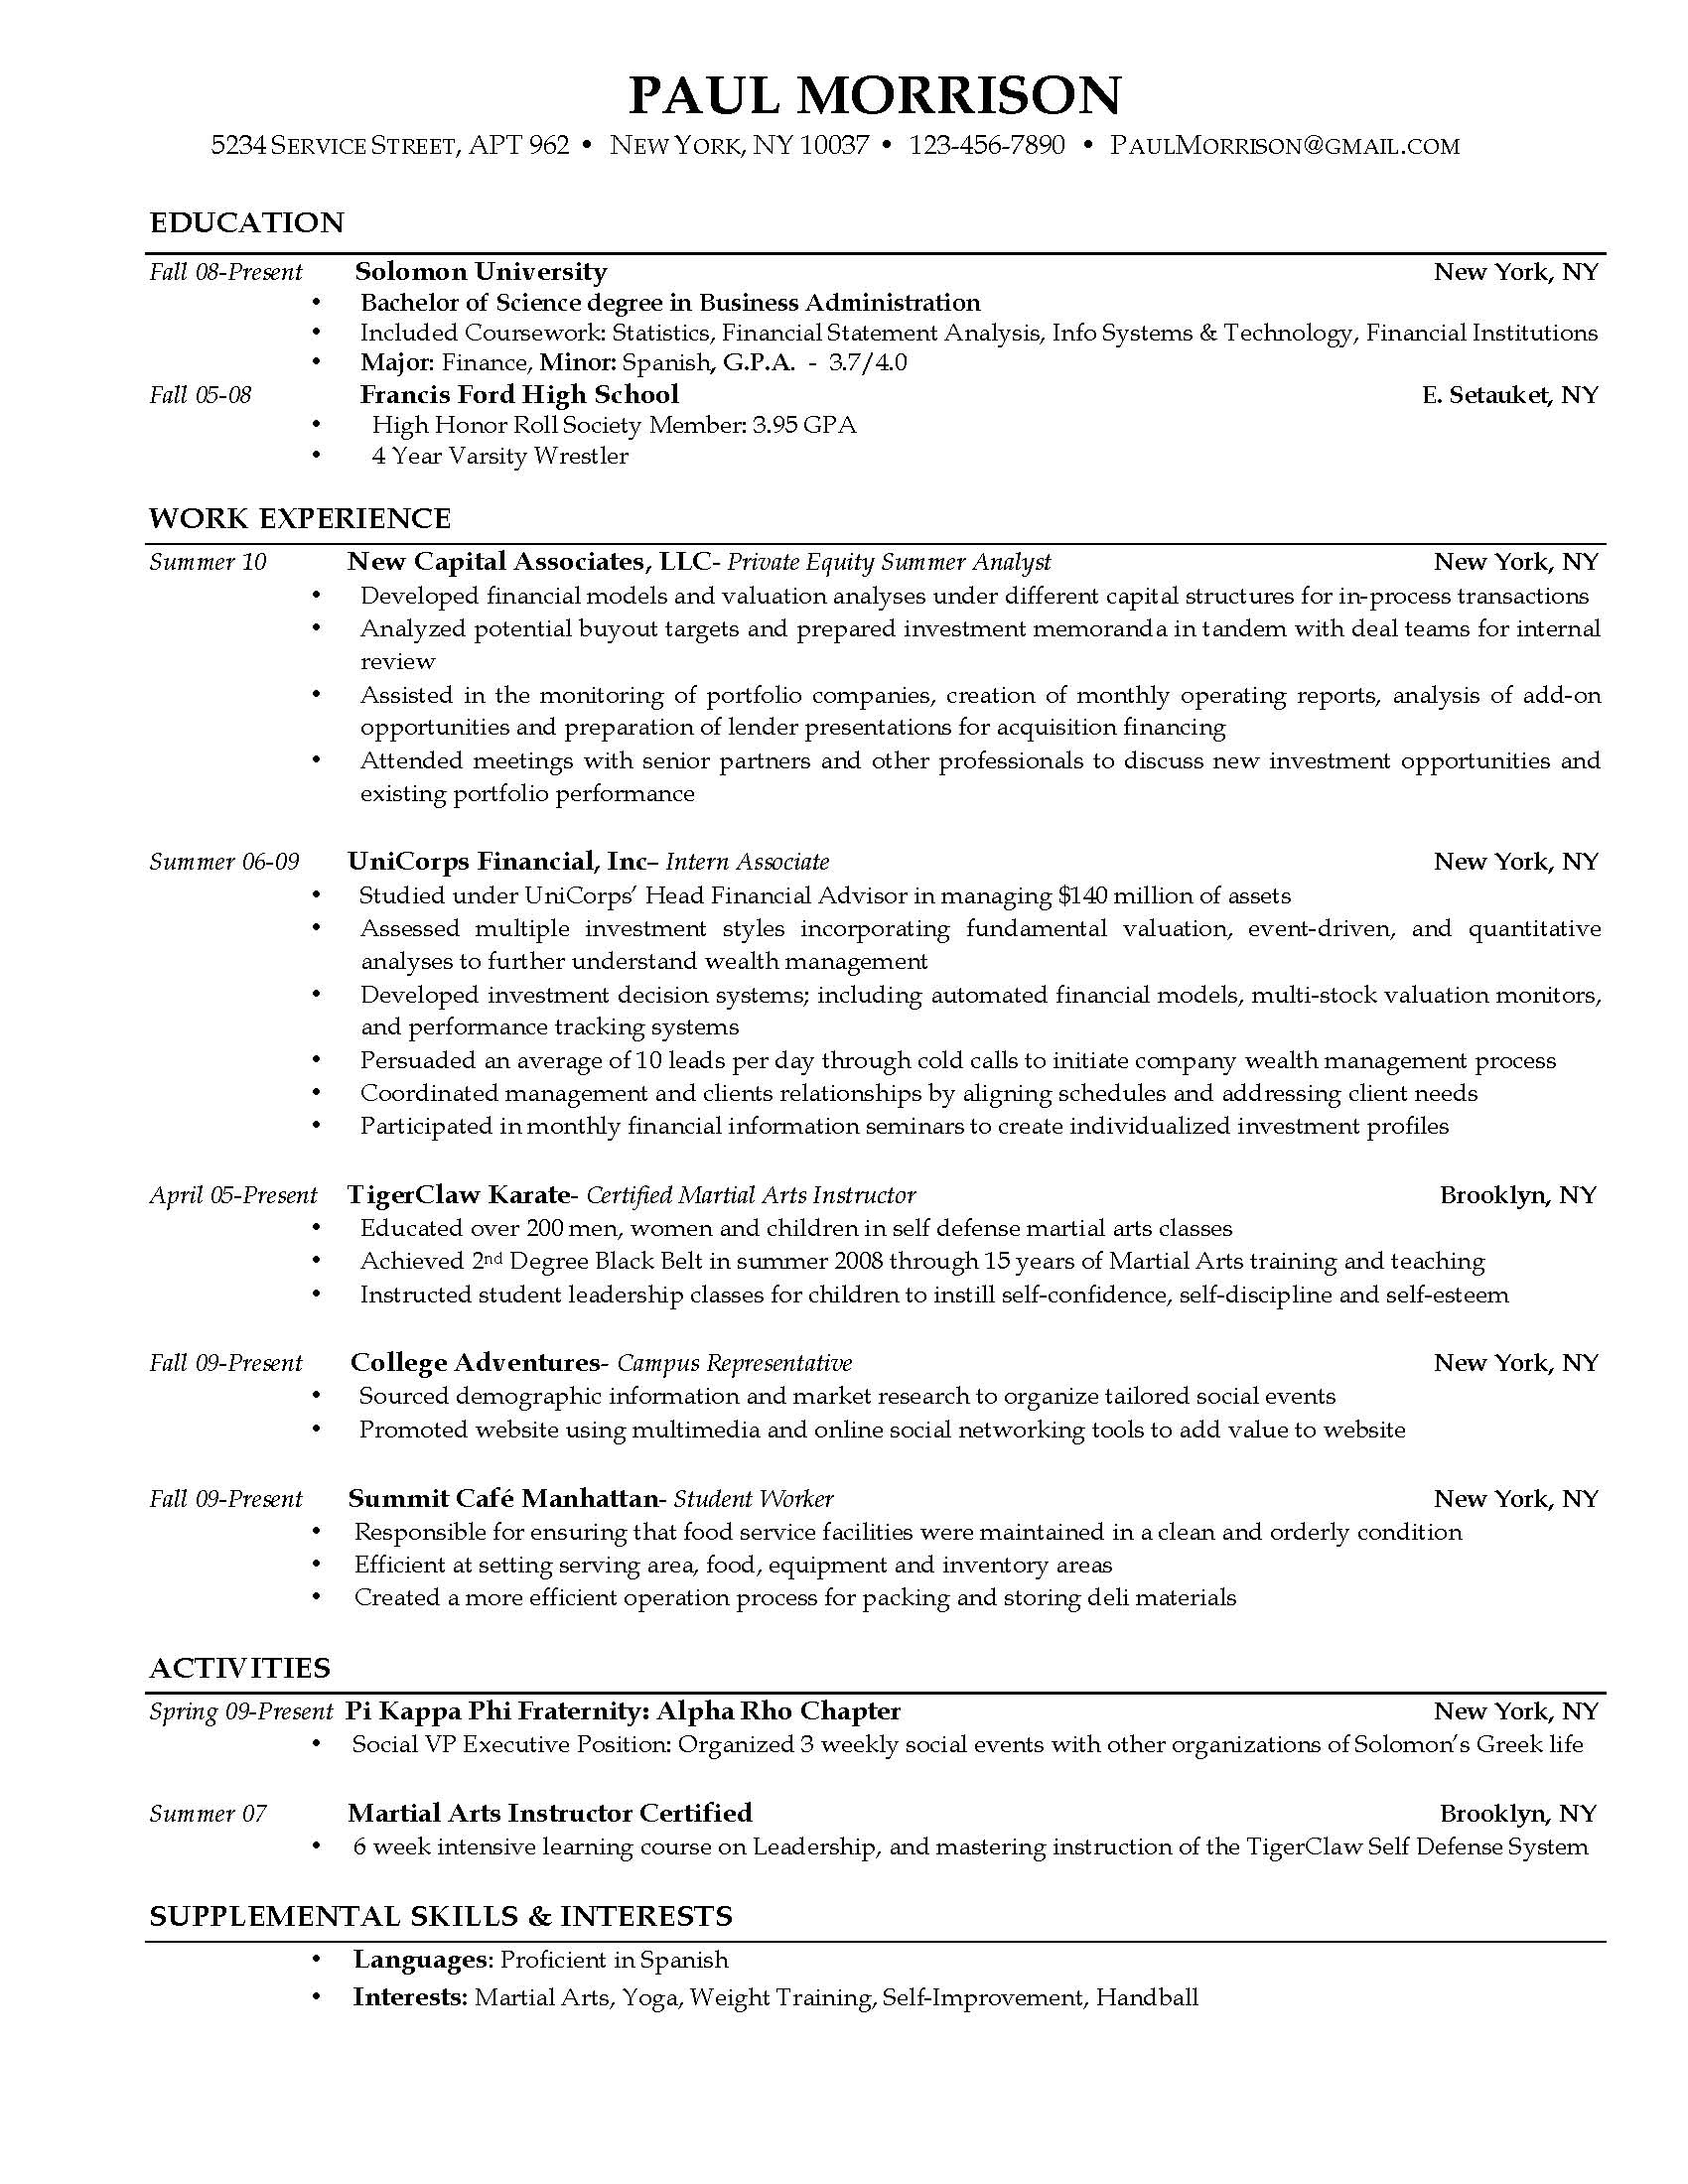 resume education emphasis resume example resume education emphasis sample of an education resume rowan university here is an example resume of